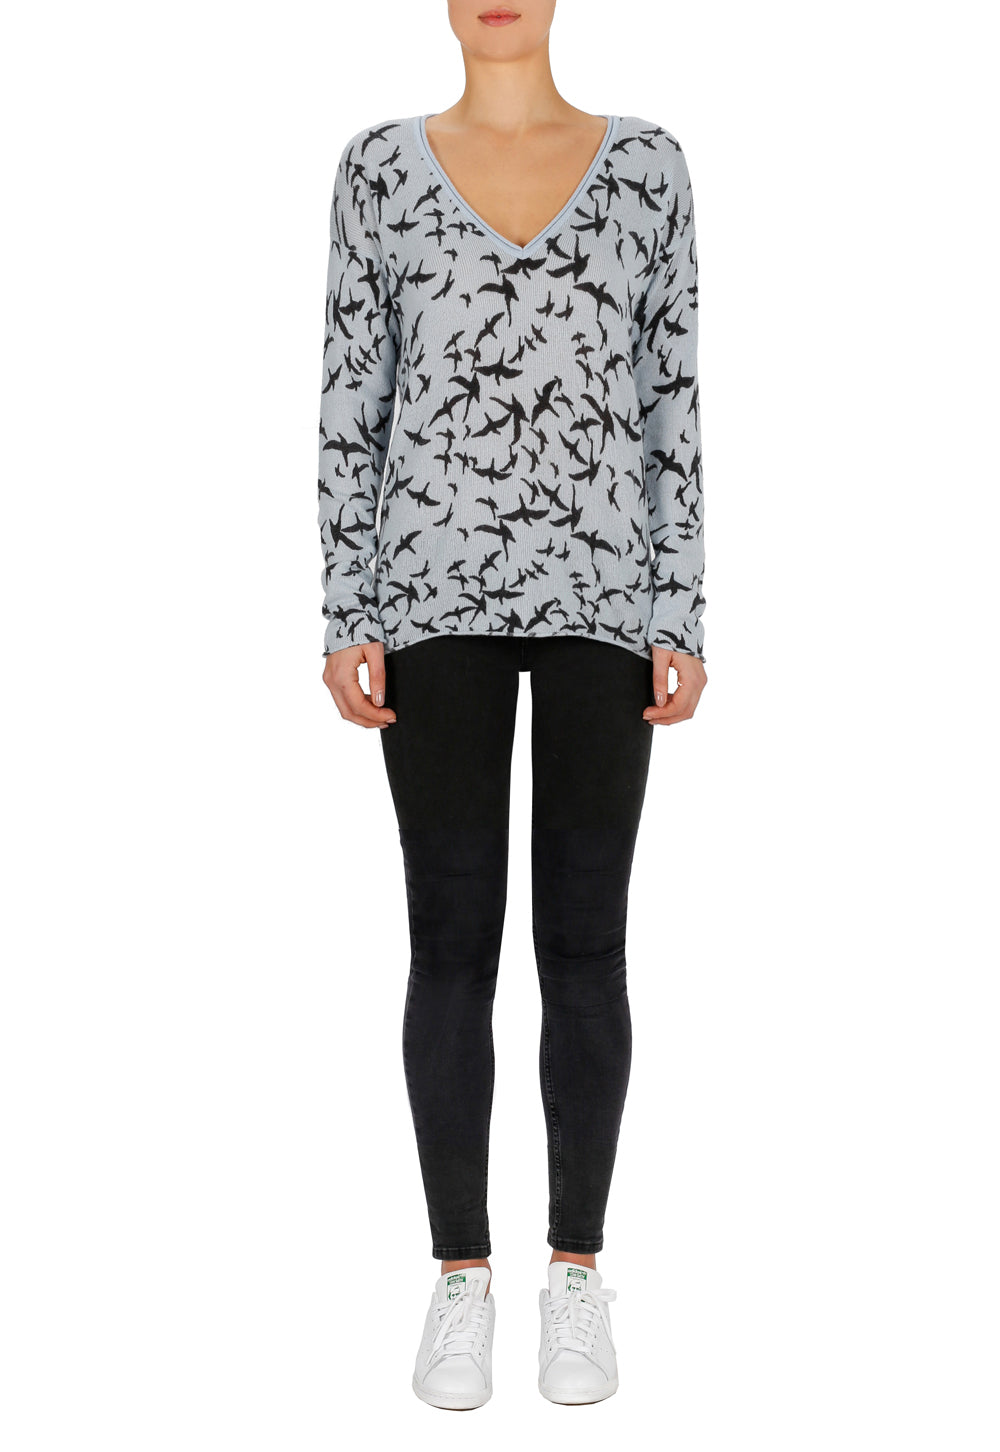 Superluxe Printed Cashmere Self Roll V Neck Sweater